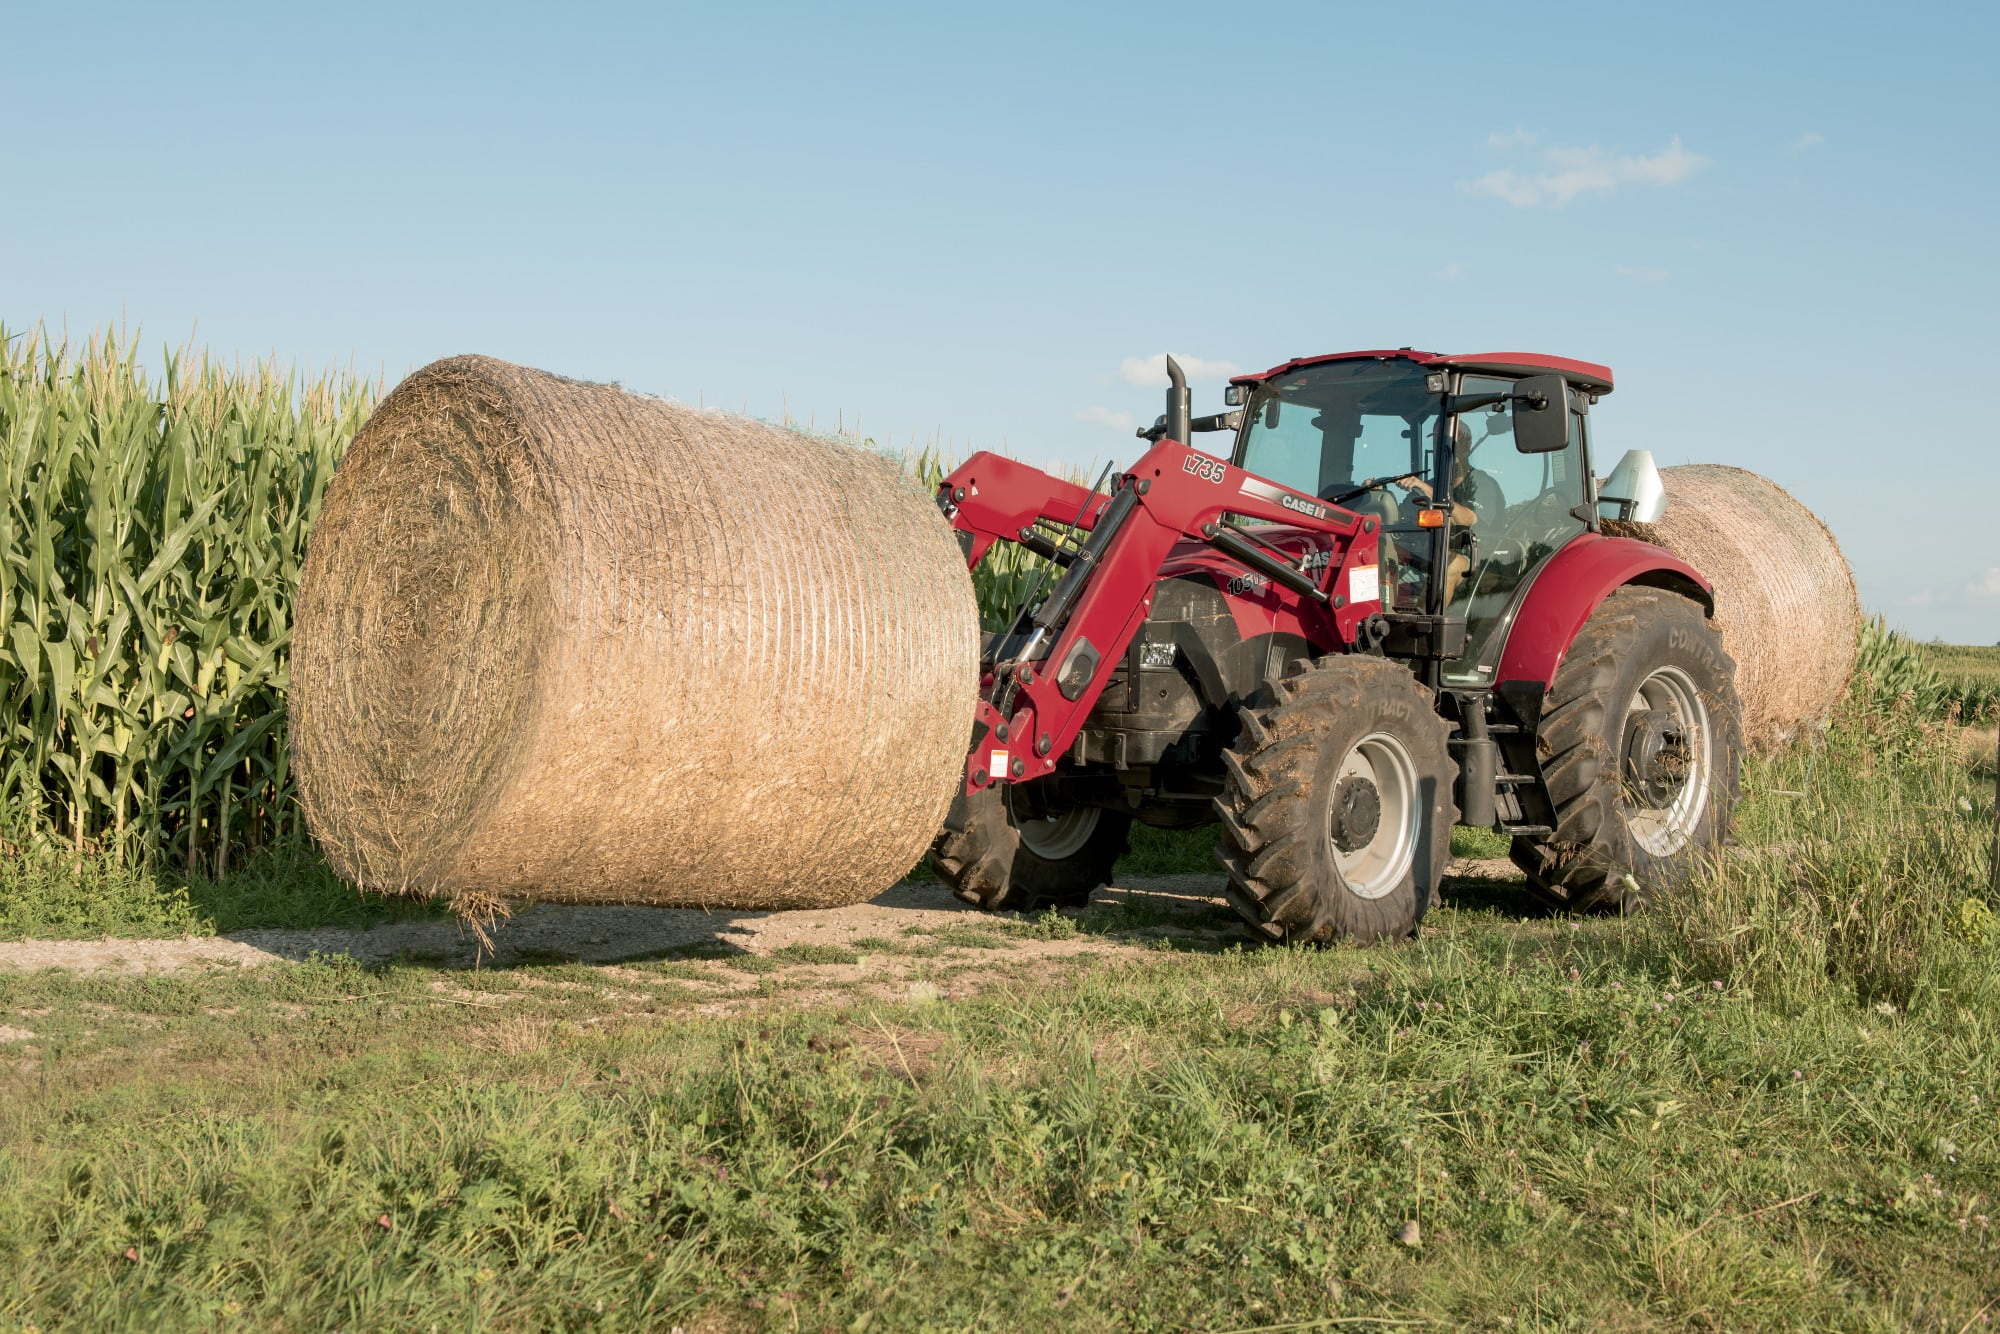 farmall_105u_pmfh 2650_07 13?width=500&height=300 loaders & attachments tractors & planters case ih